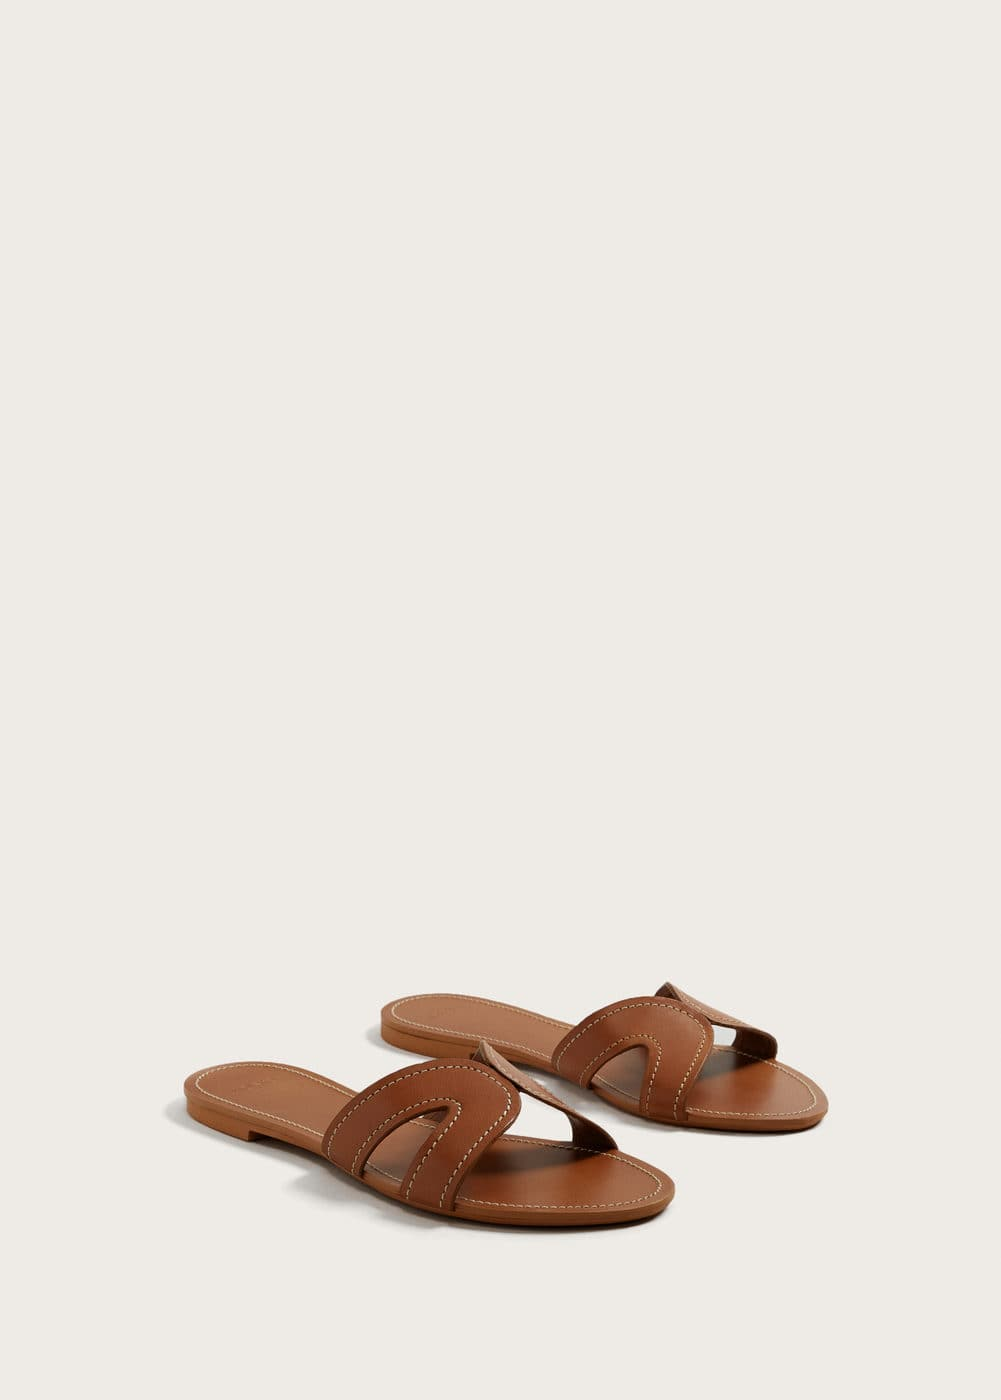 Stich leather sandals | VIOLETA BY MANGO